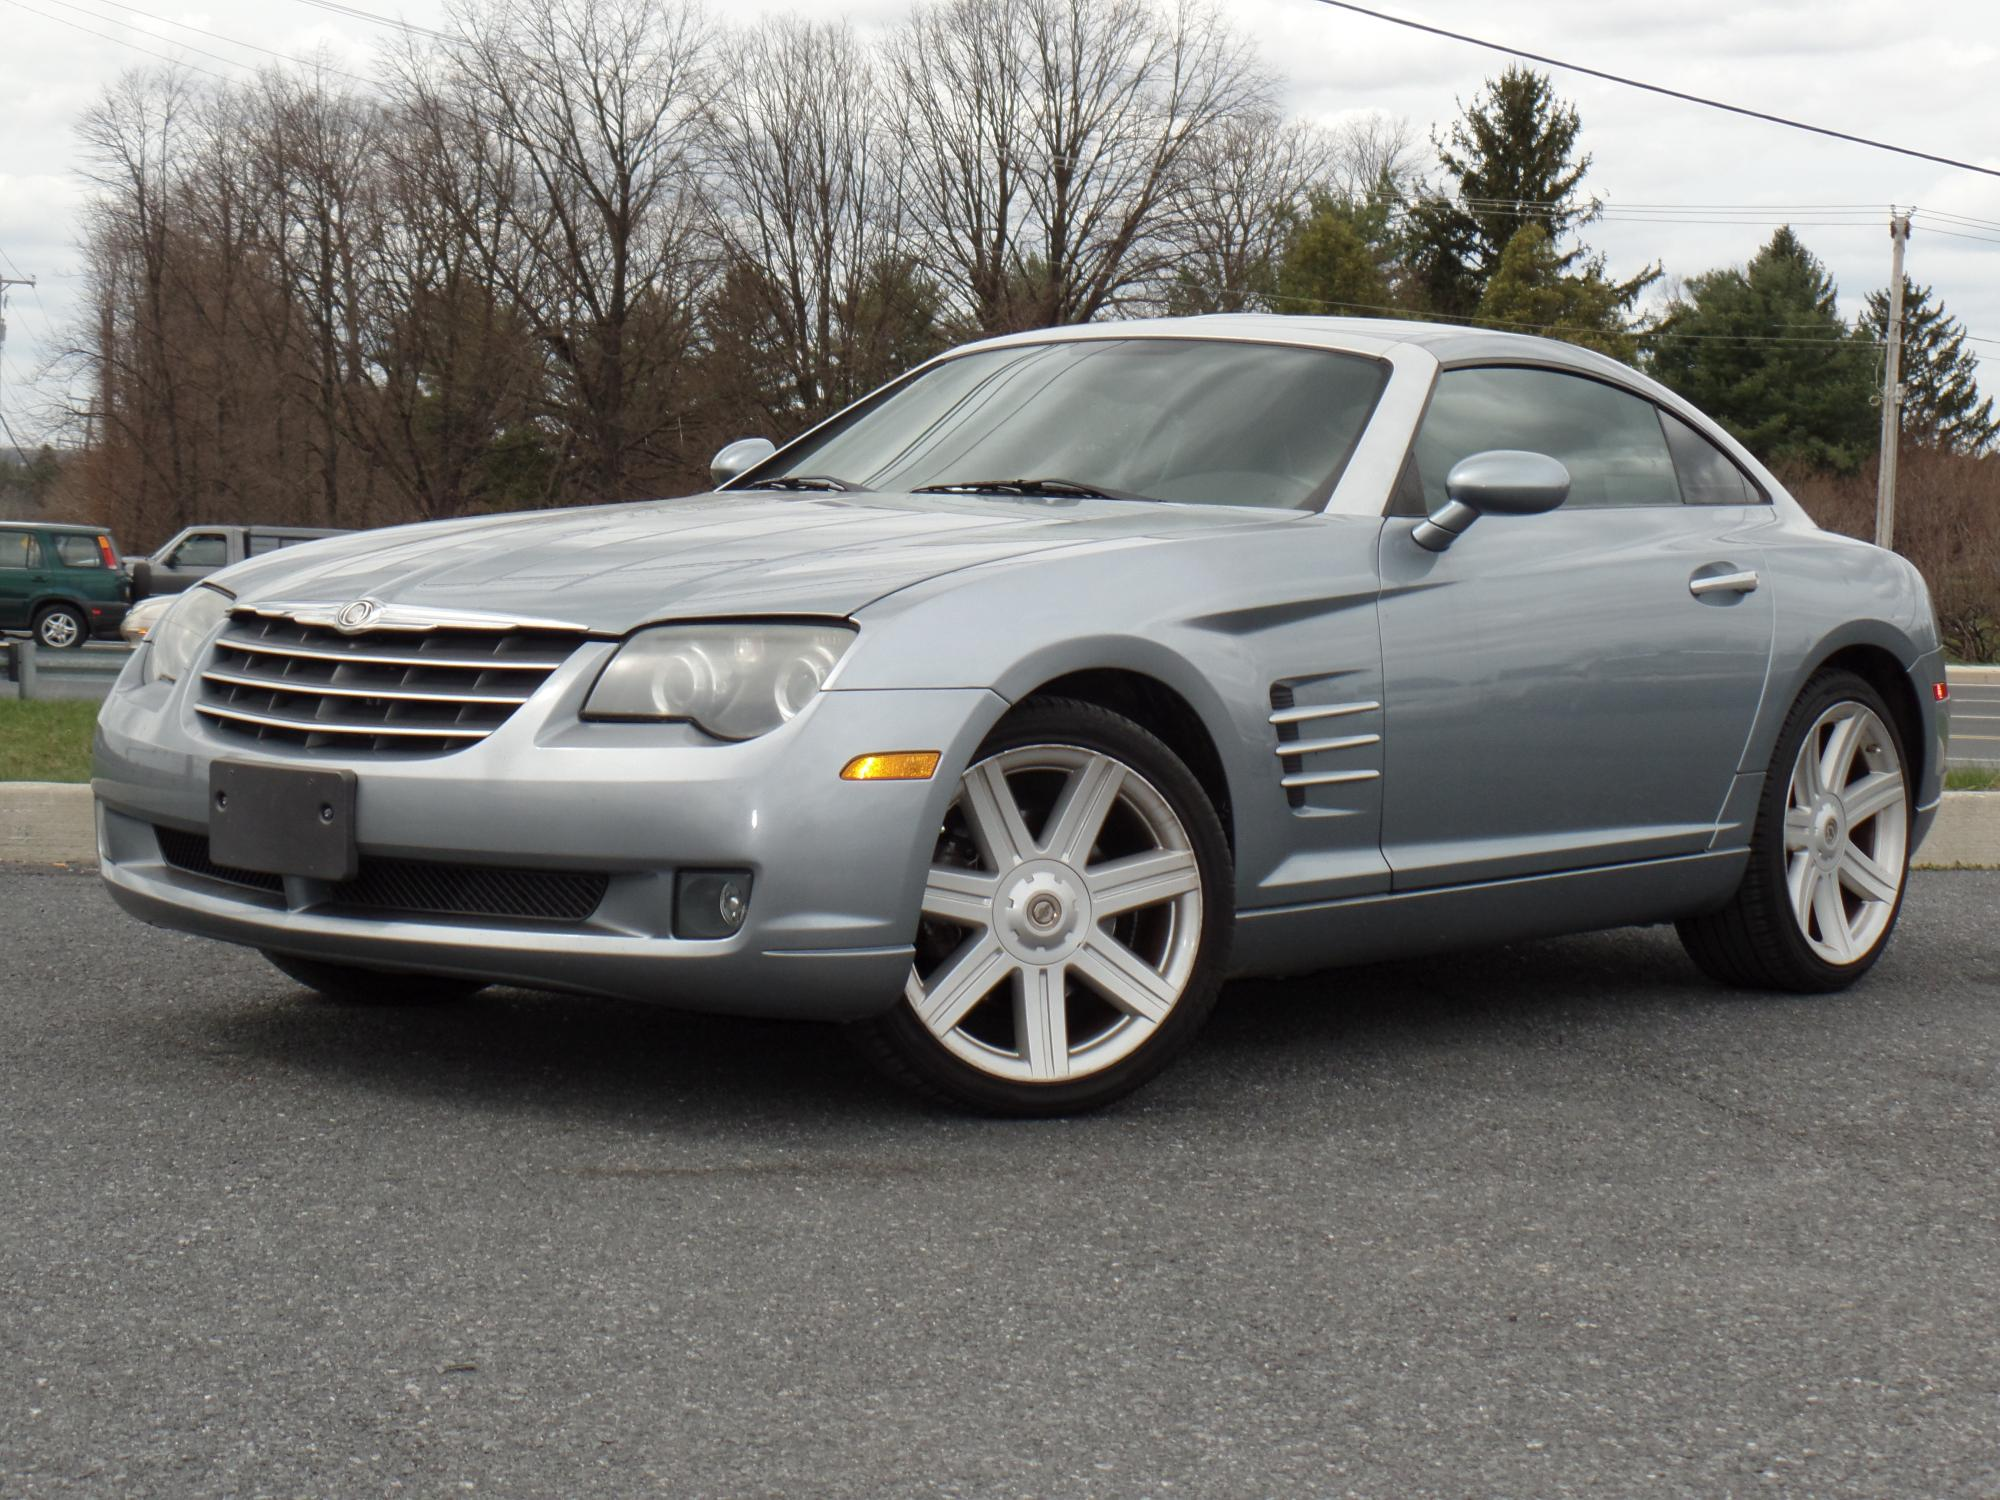 4-24-2018_2004_Chrysler_Crossfire_001390__1_.JPG